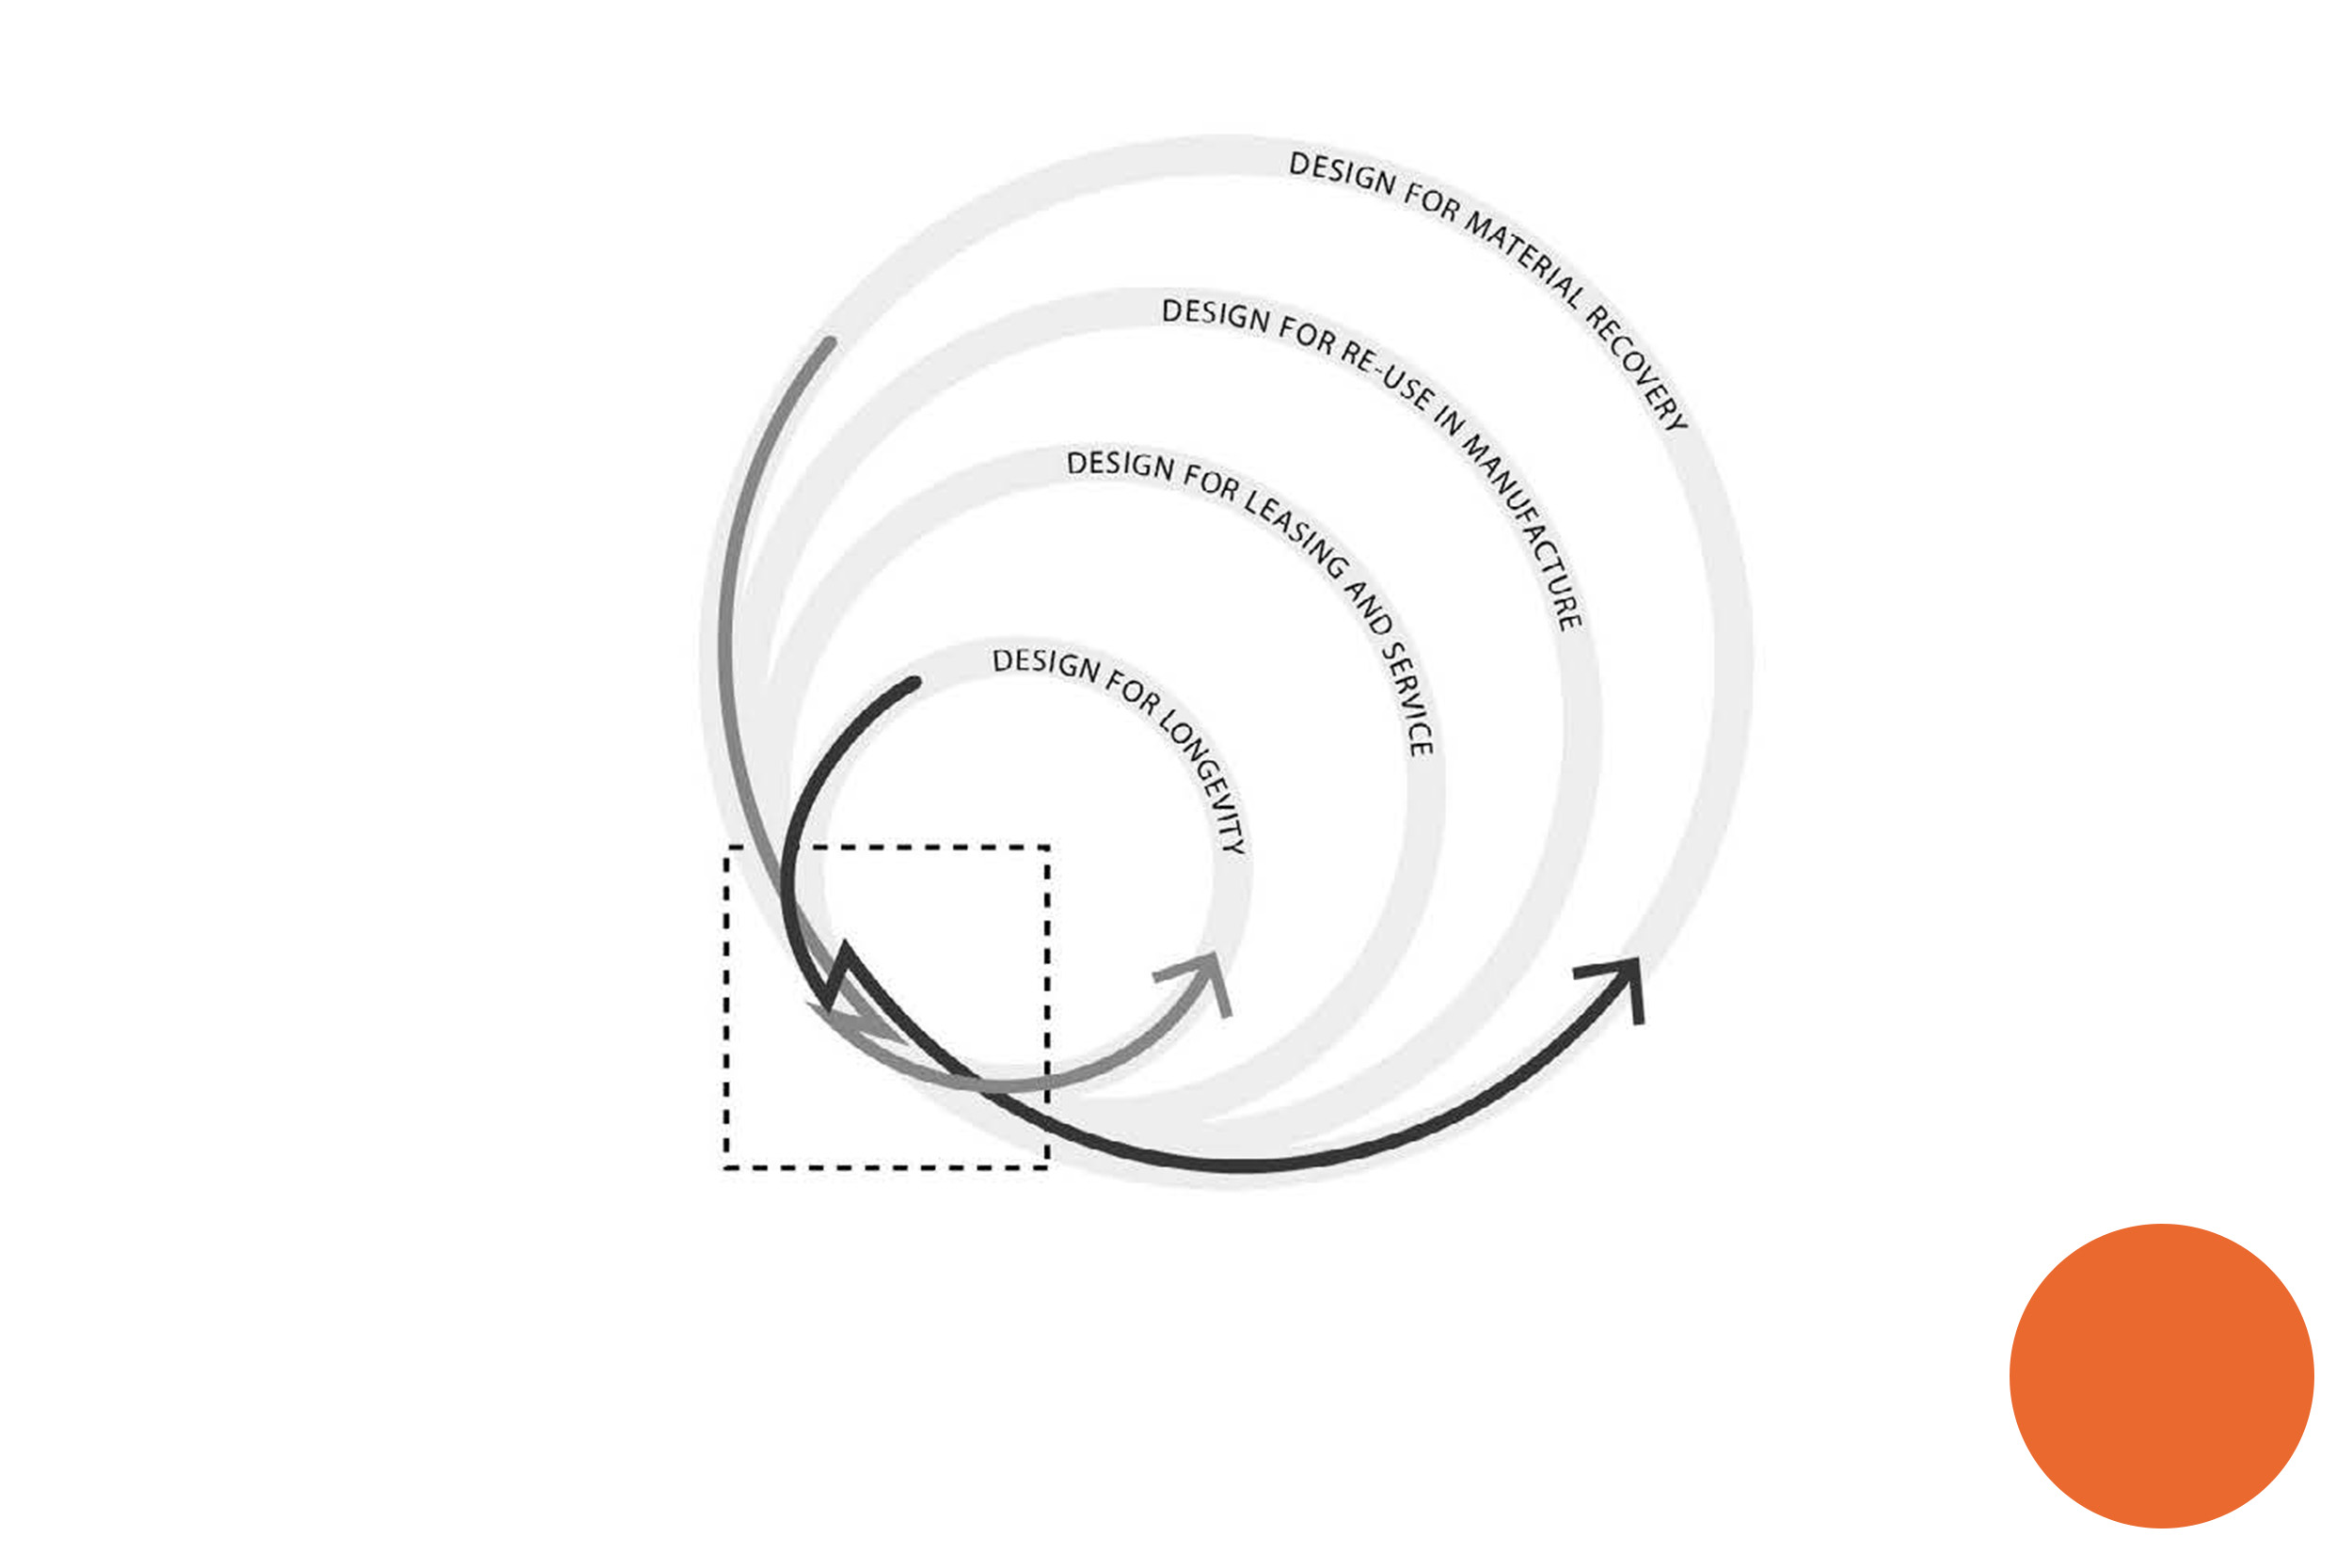 Paper 1 - Can Design-Driven Material Innovation Also Drive Circularity?2016